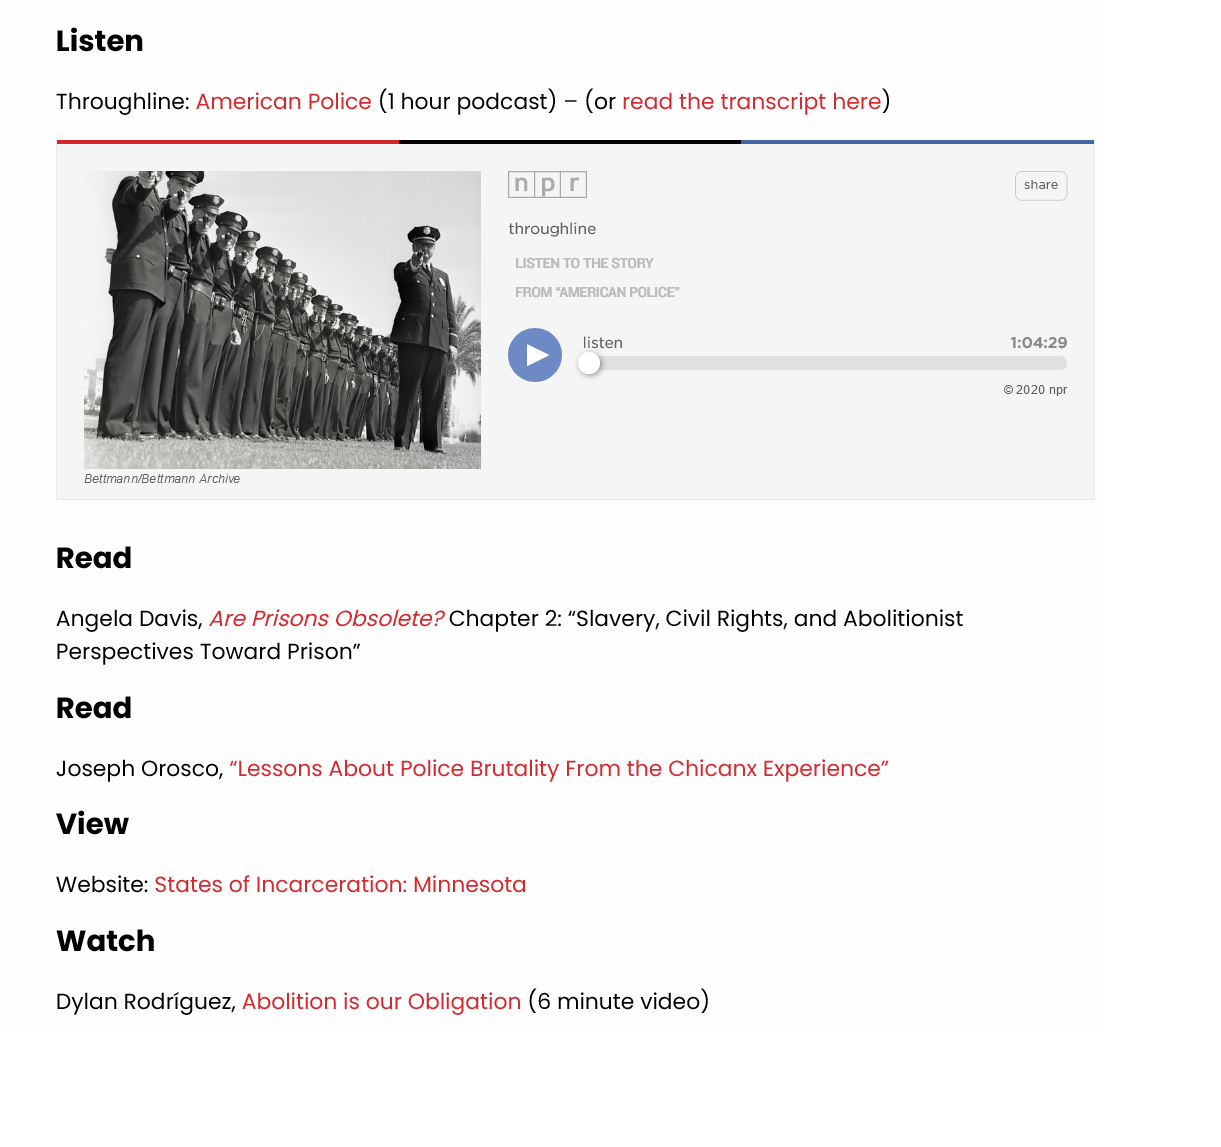 Sample from abolition website listing podcasts, articles, and videos with simple text and embedded links